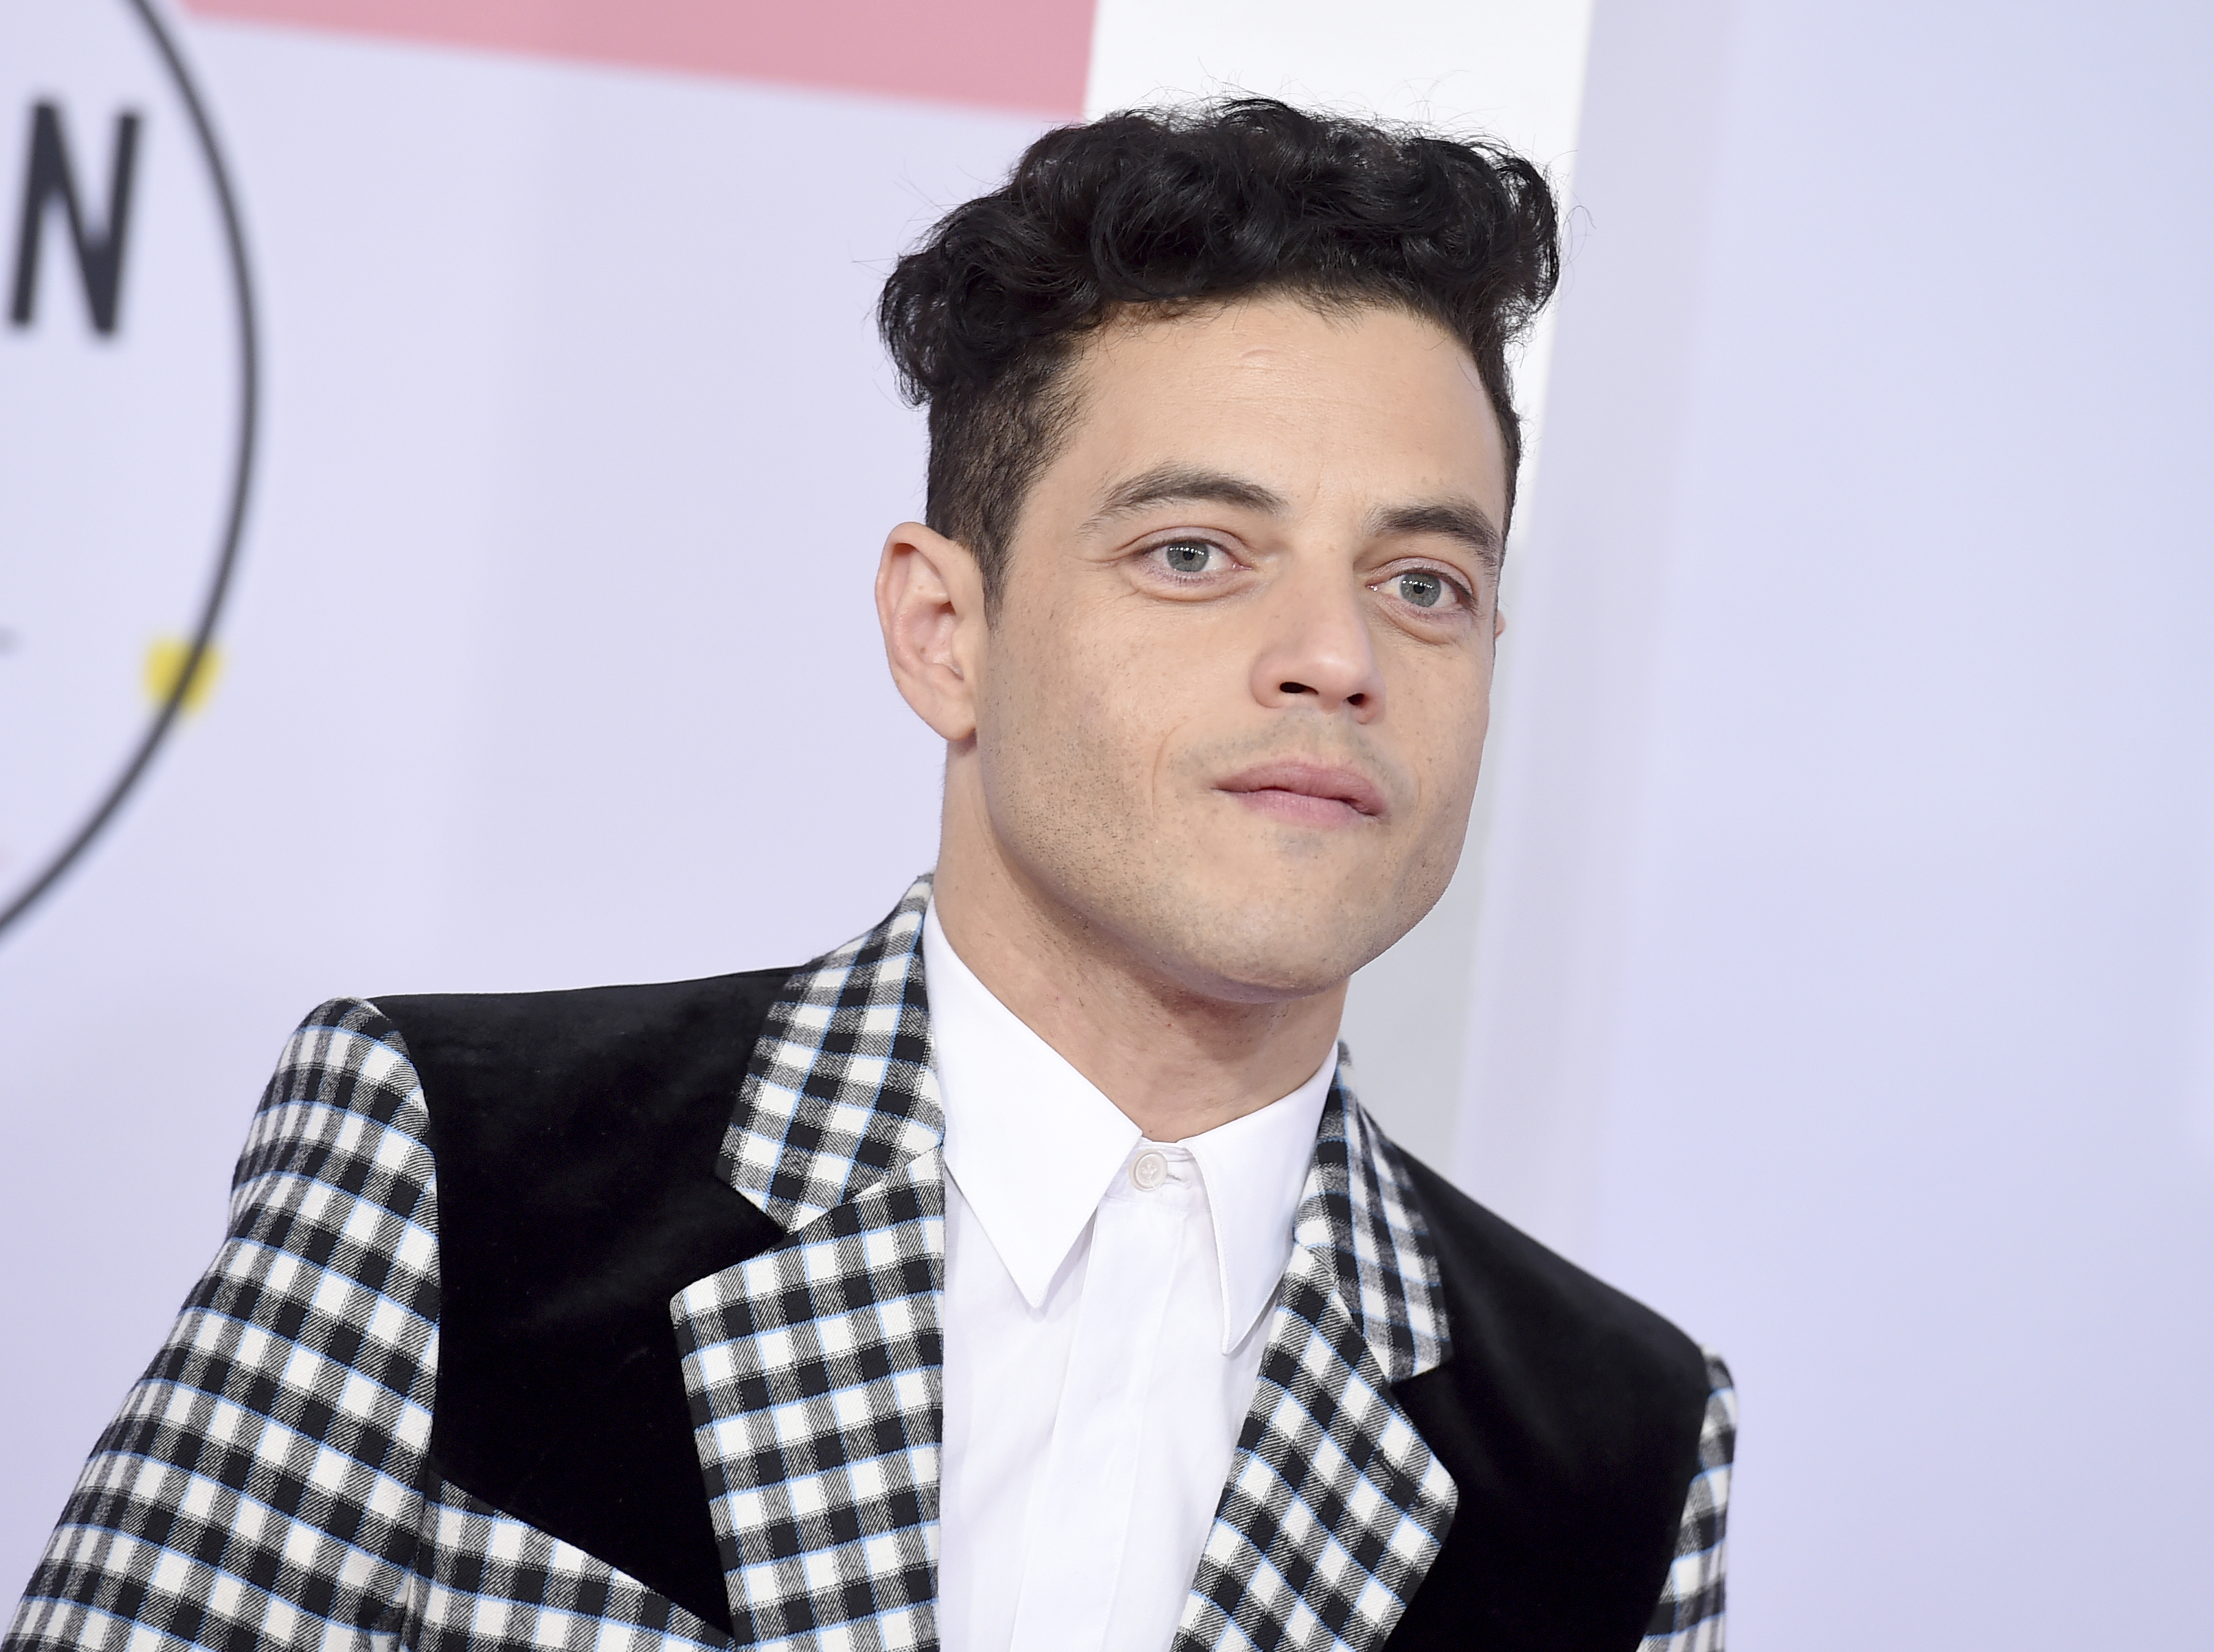 "<div class=""meta image-caption""><div class=""origin-logo origin-image none""><span>none</span></div><span class=""caption-text"">Rami Malek arrives at the American Music Awards on Tuesday, Oct. 9, 2018, at the Microsoft Theater in Los Angeles. (Jordan Strauss/Invision/AP)</span></div>"